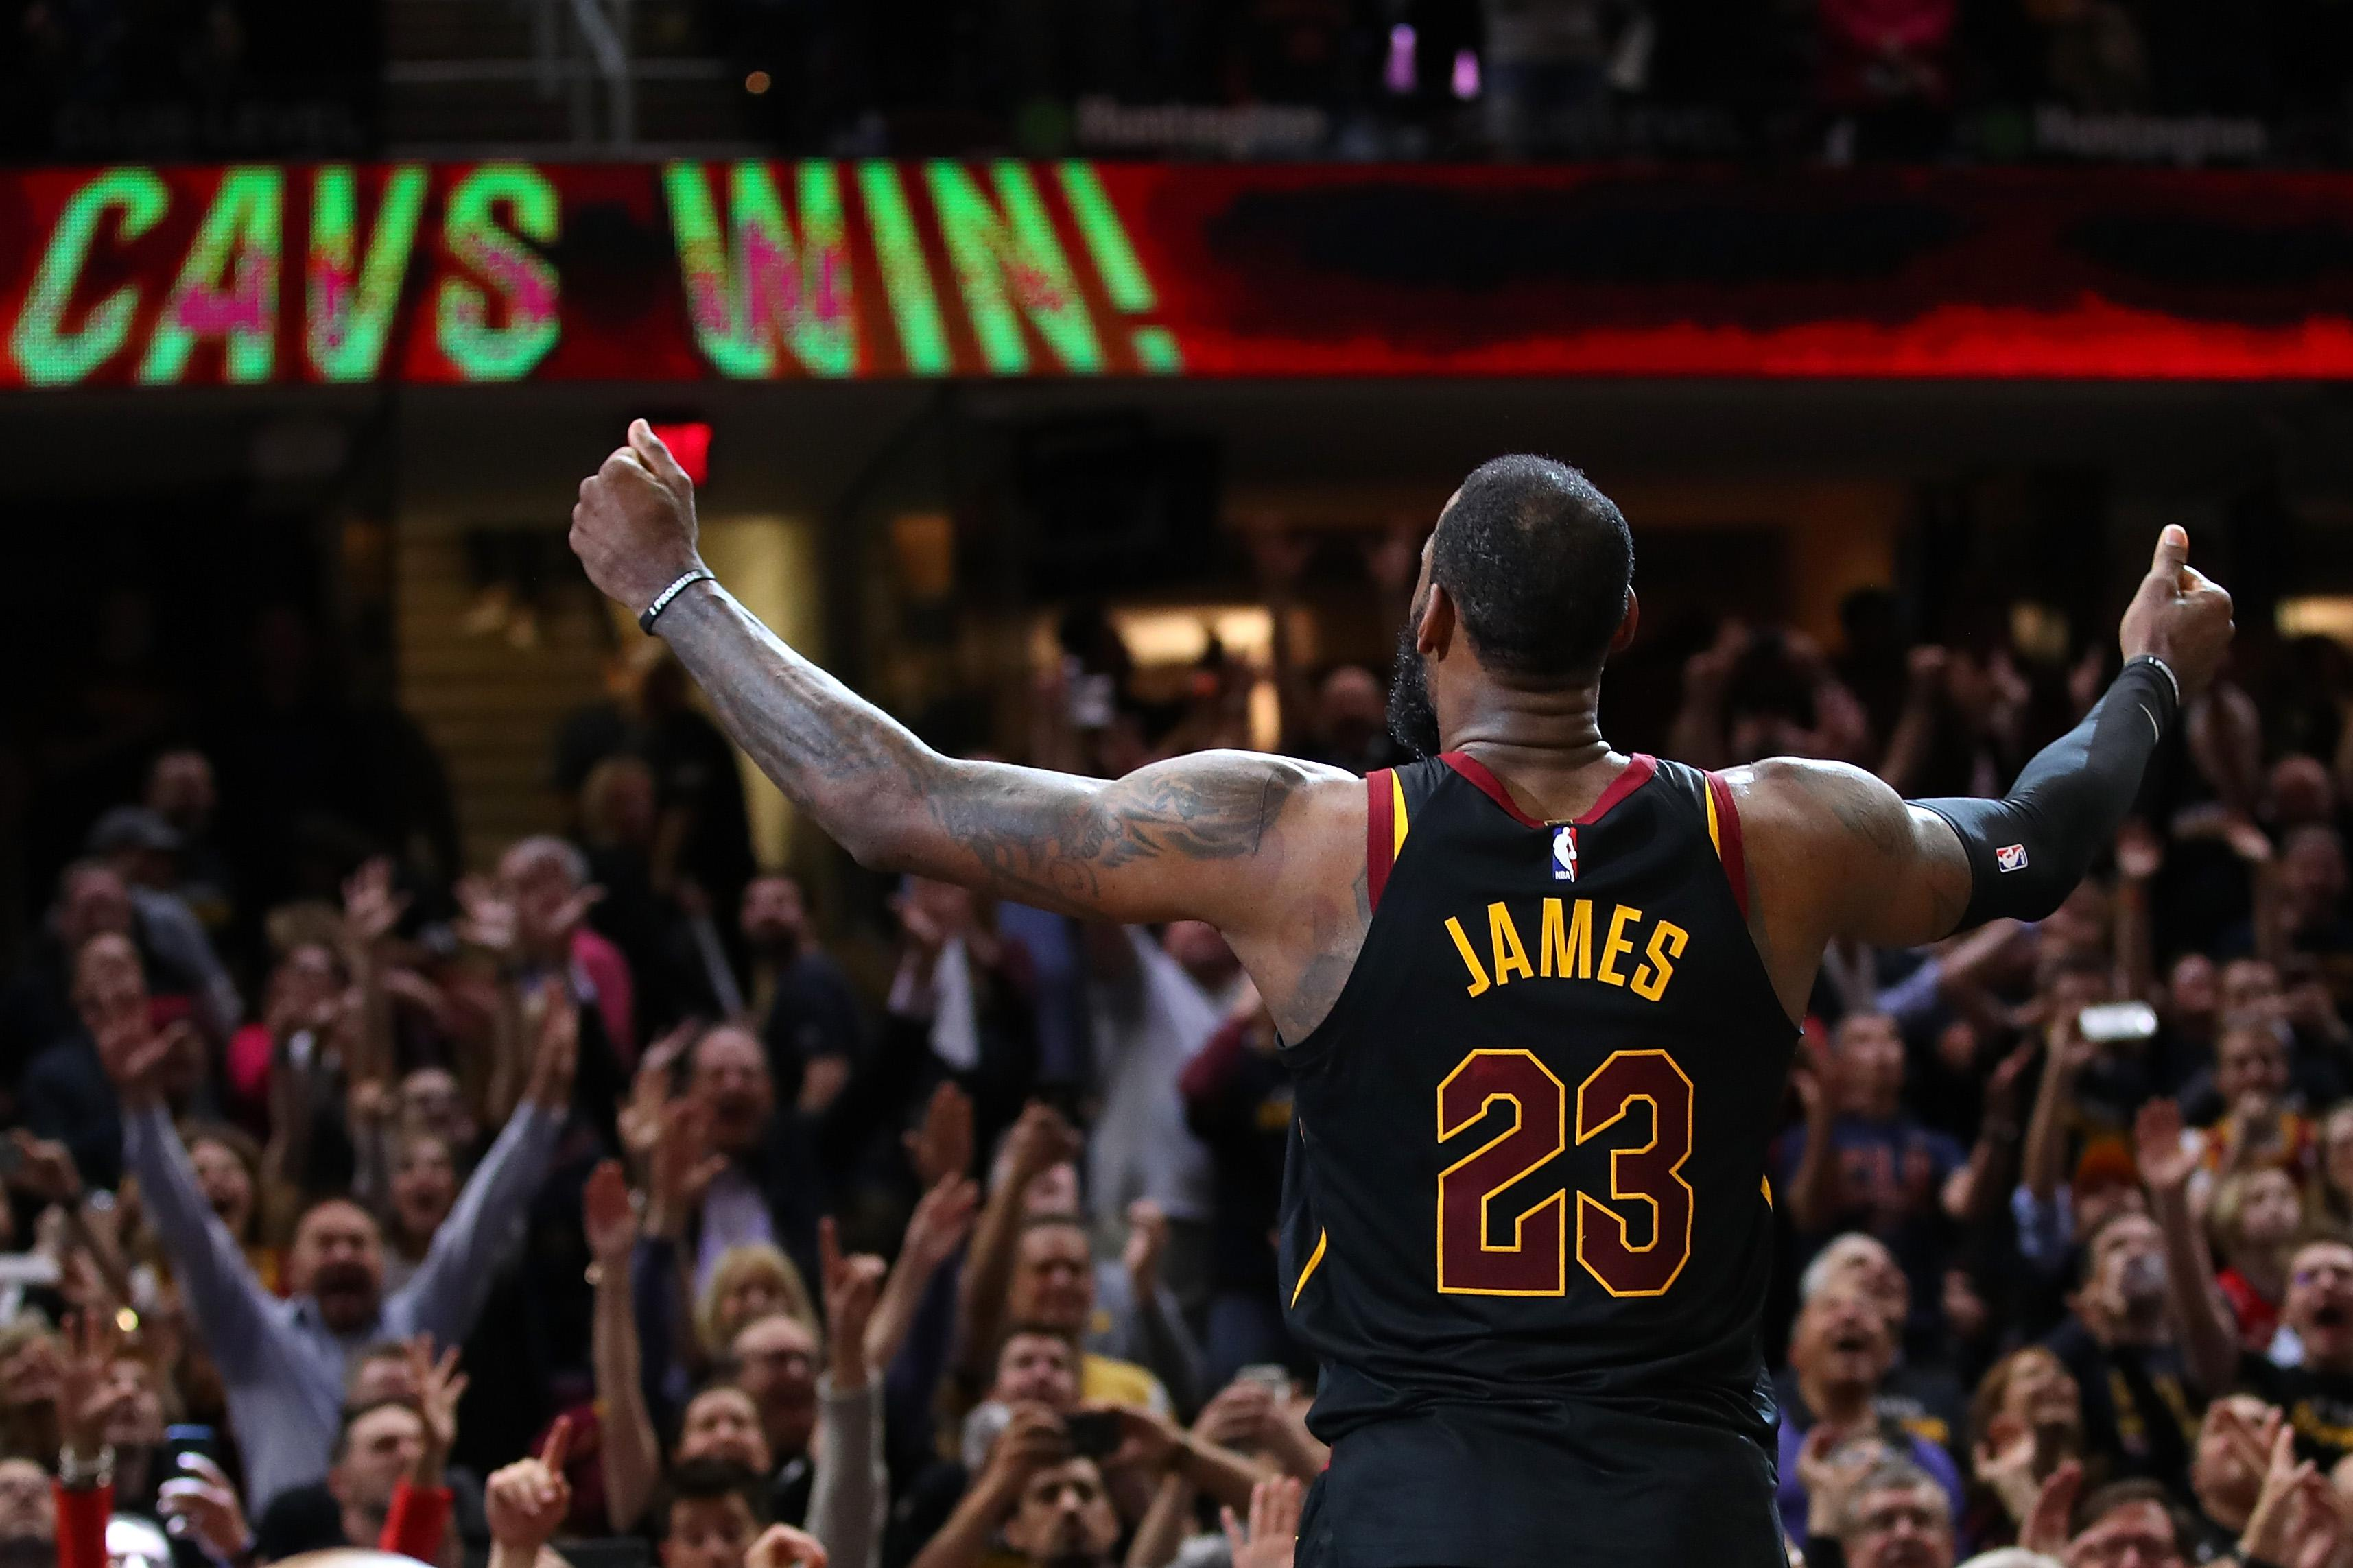 CLEVELAND, OH - MAY 05:  LeBron James #23 of the Cleveland Cavaliers celebrates after hitting the game winning shot to beat the Toronto Raptors 105-103 in Game Three of the Eastern Conference Semifinals during the 2018 NBA Playoffs at Quicken Loans Arena on May 5, 2018 in Cleveland, Ohio. NOTE TO USER: User expressly acknowledges and agrees that, by downloading and or using this photograph, User is consenting to the terms and conditions of the Getty Images License Agreement. (Photo by Gregory Shamus/Getty Images)